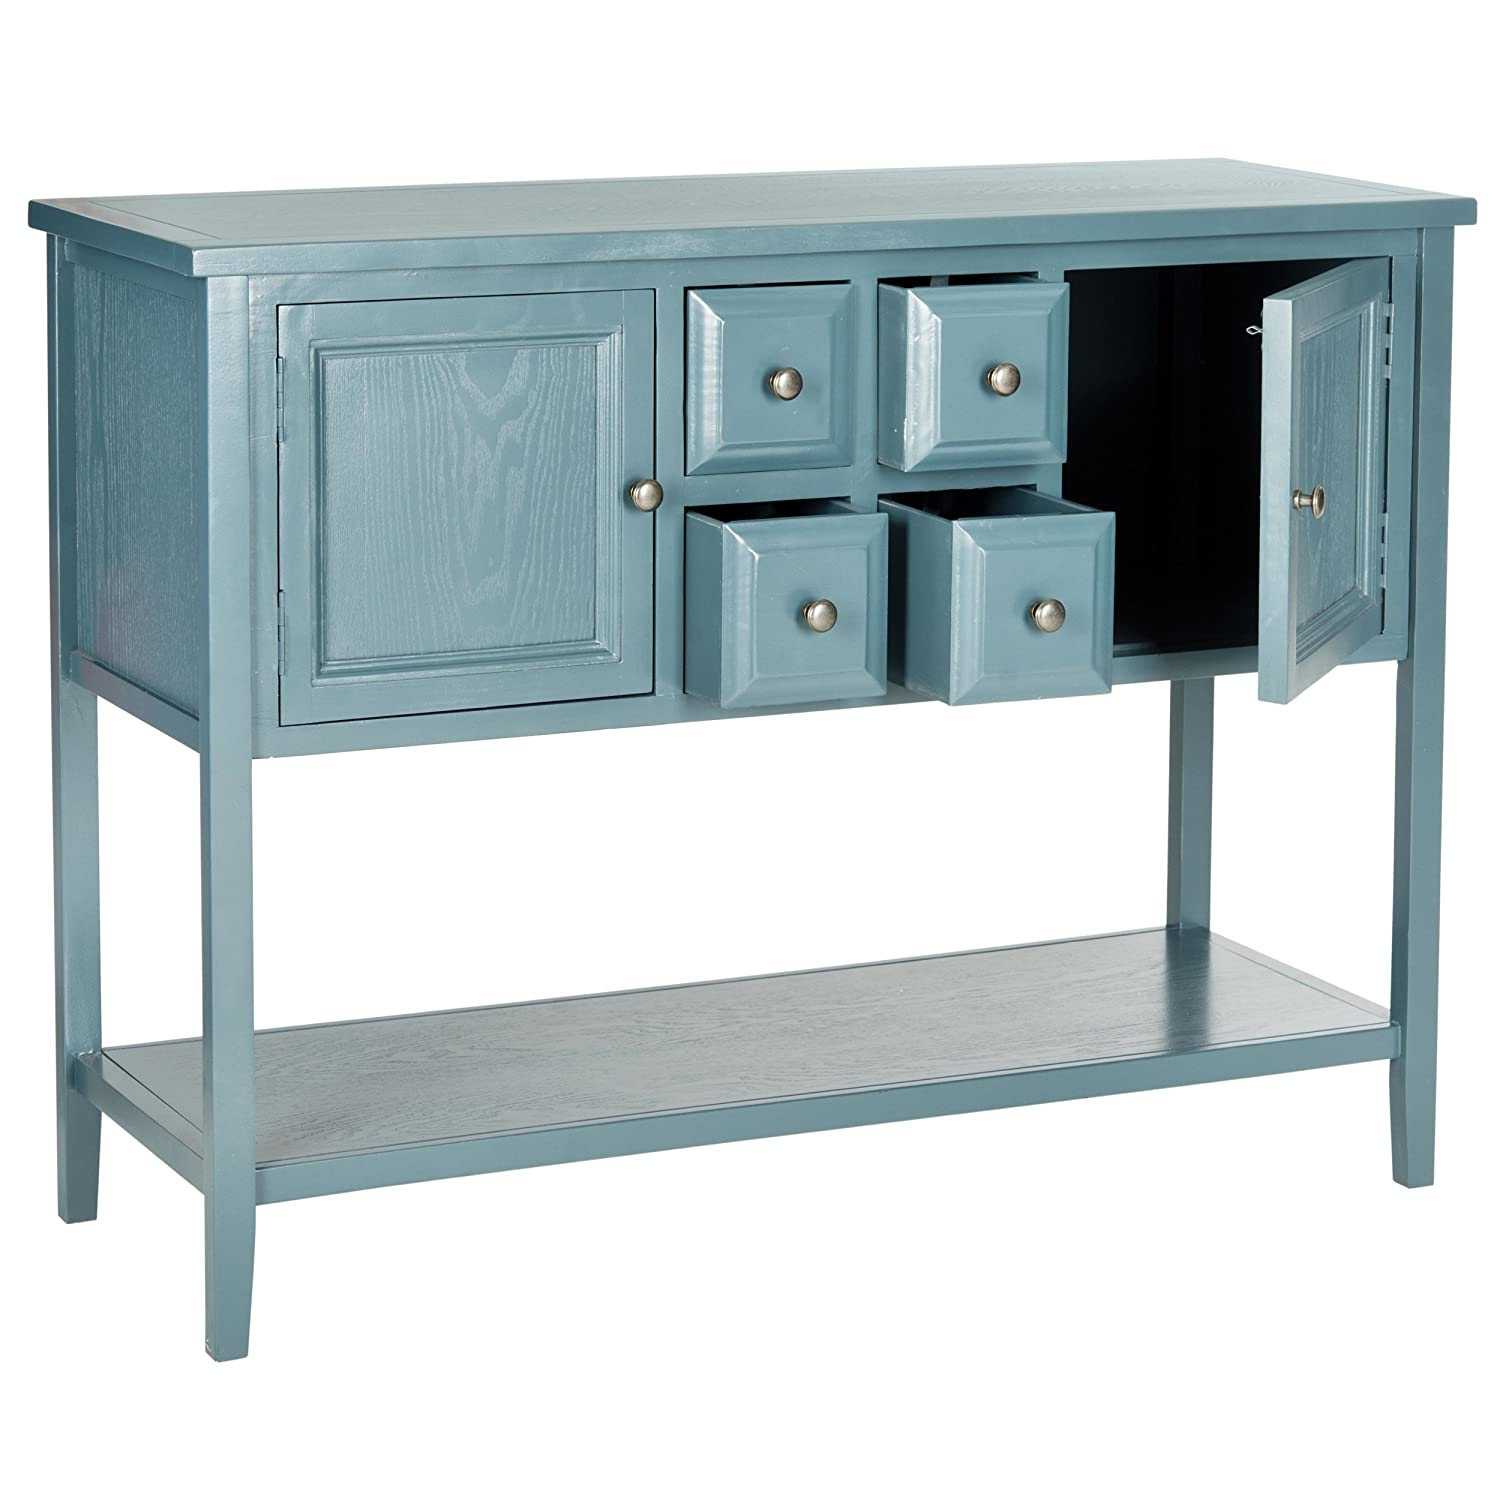 Merveilleux Amazon.com   Safavieh American Homes Collection Charlotte Slate Teal  Sideboard   Buffets U0026 Sideboards